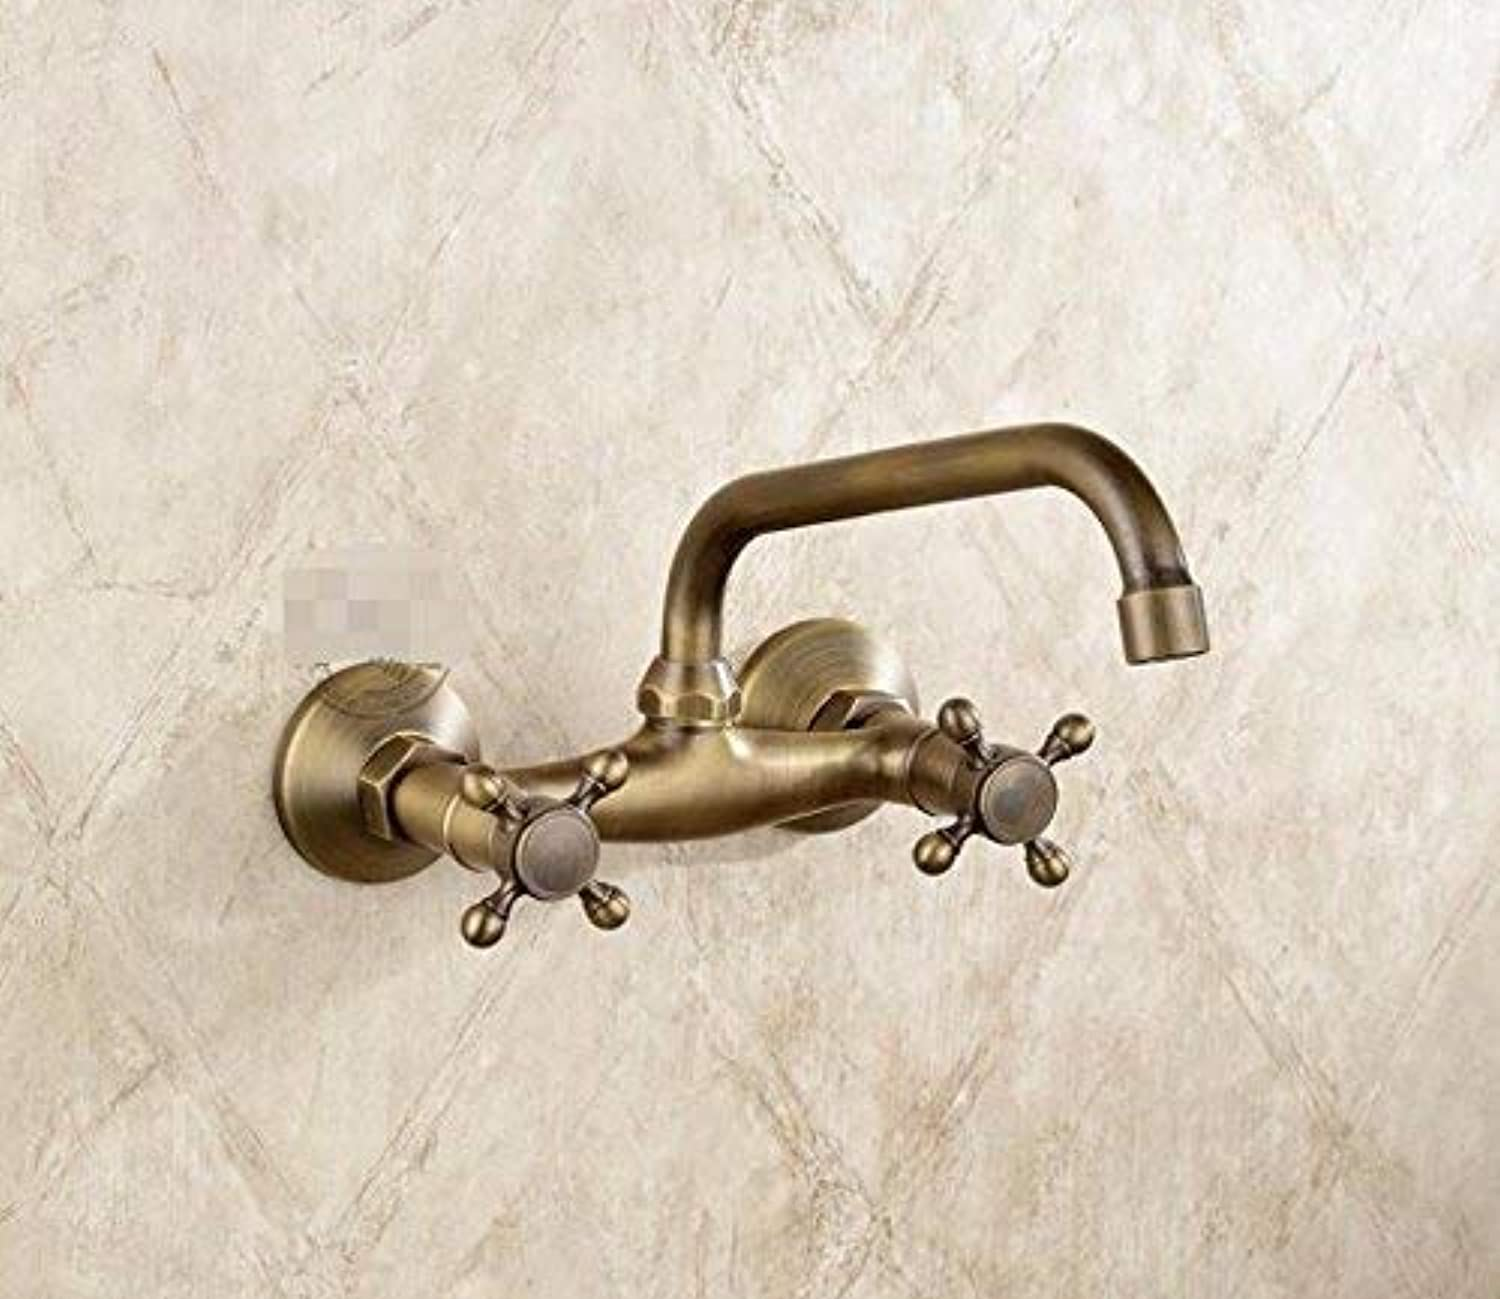 Oudan Antique Sink Mixer Tap Bathroom Wall Mounted Double Double Hole Antique colora